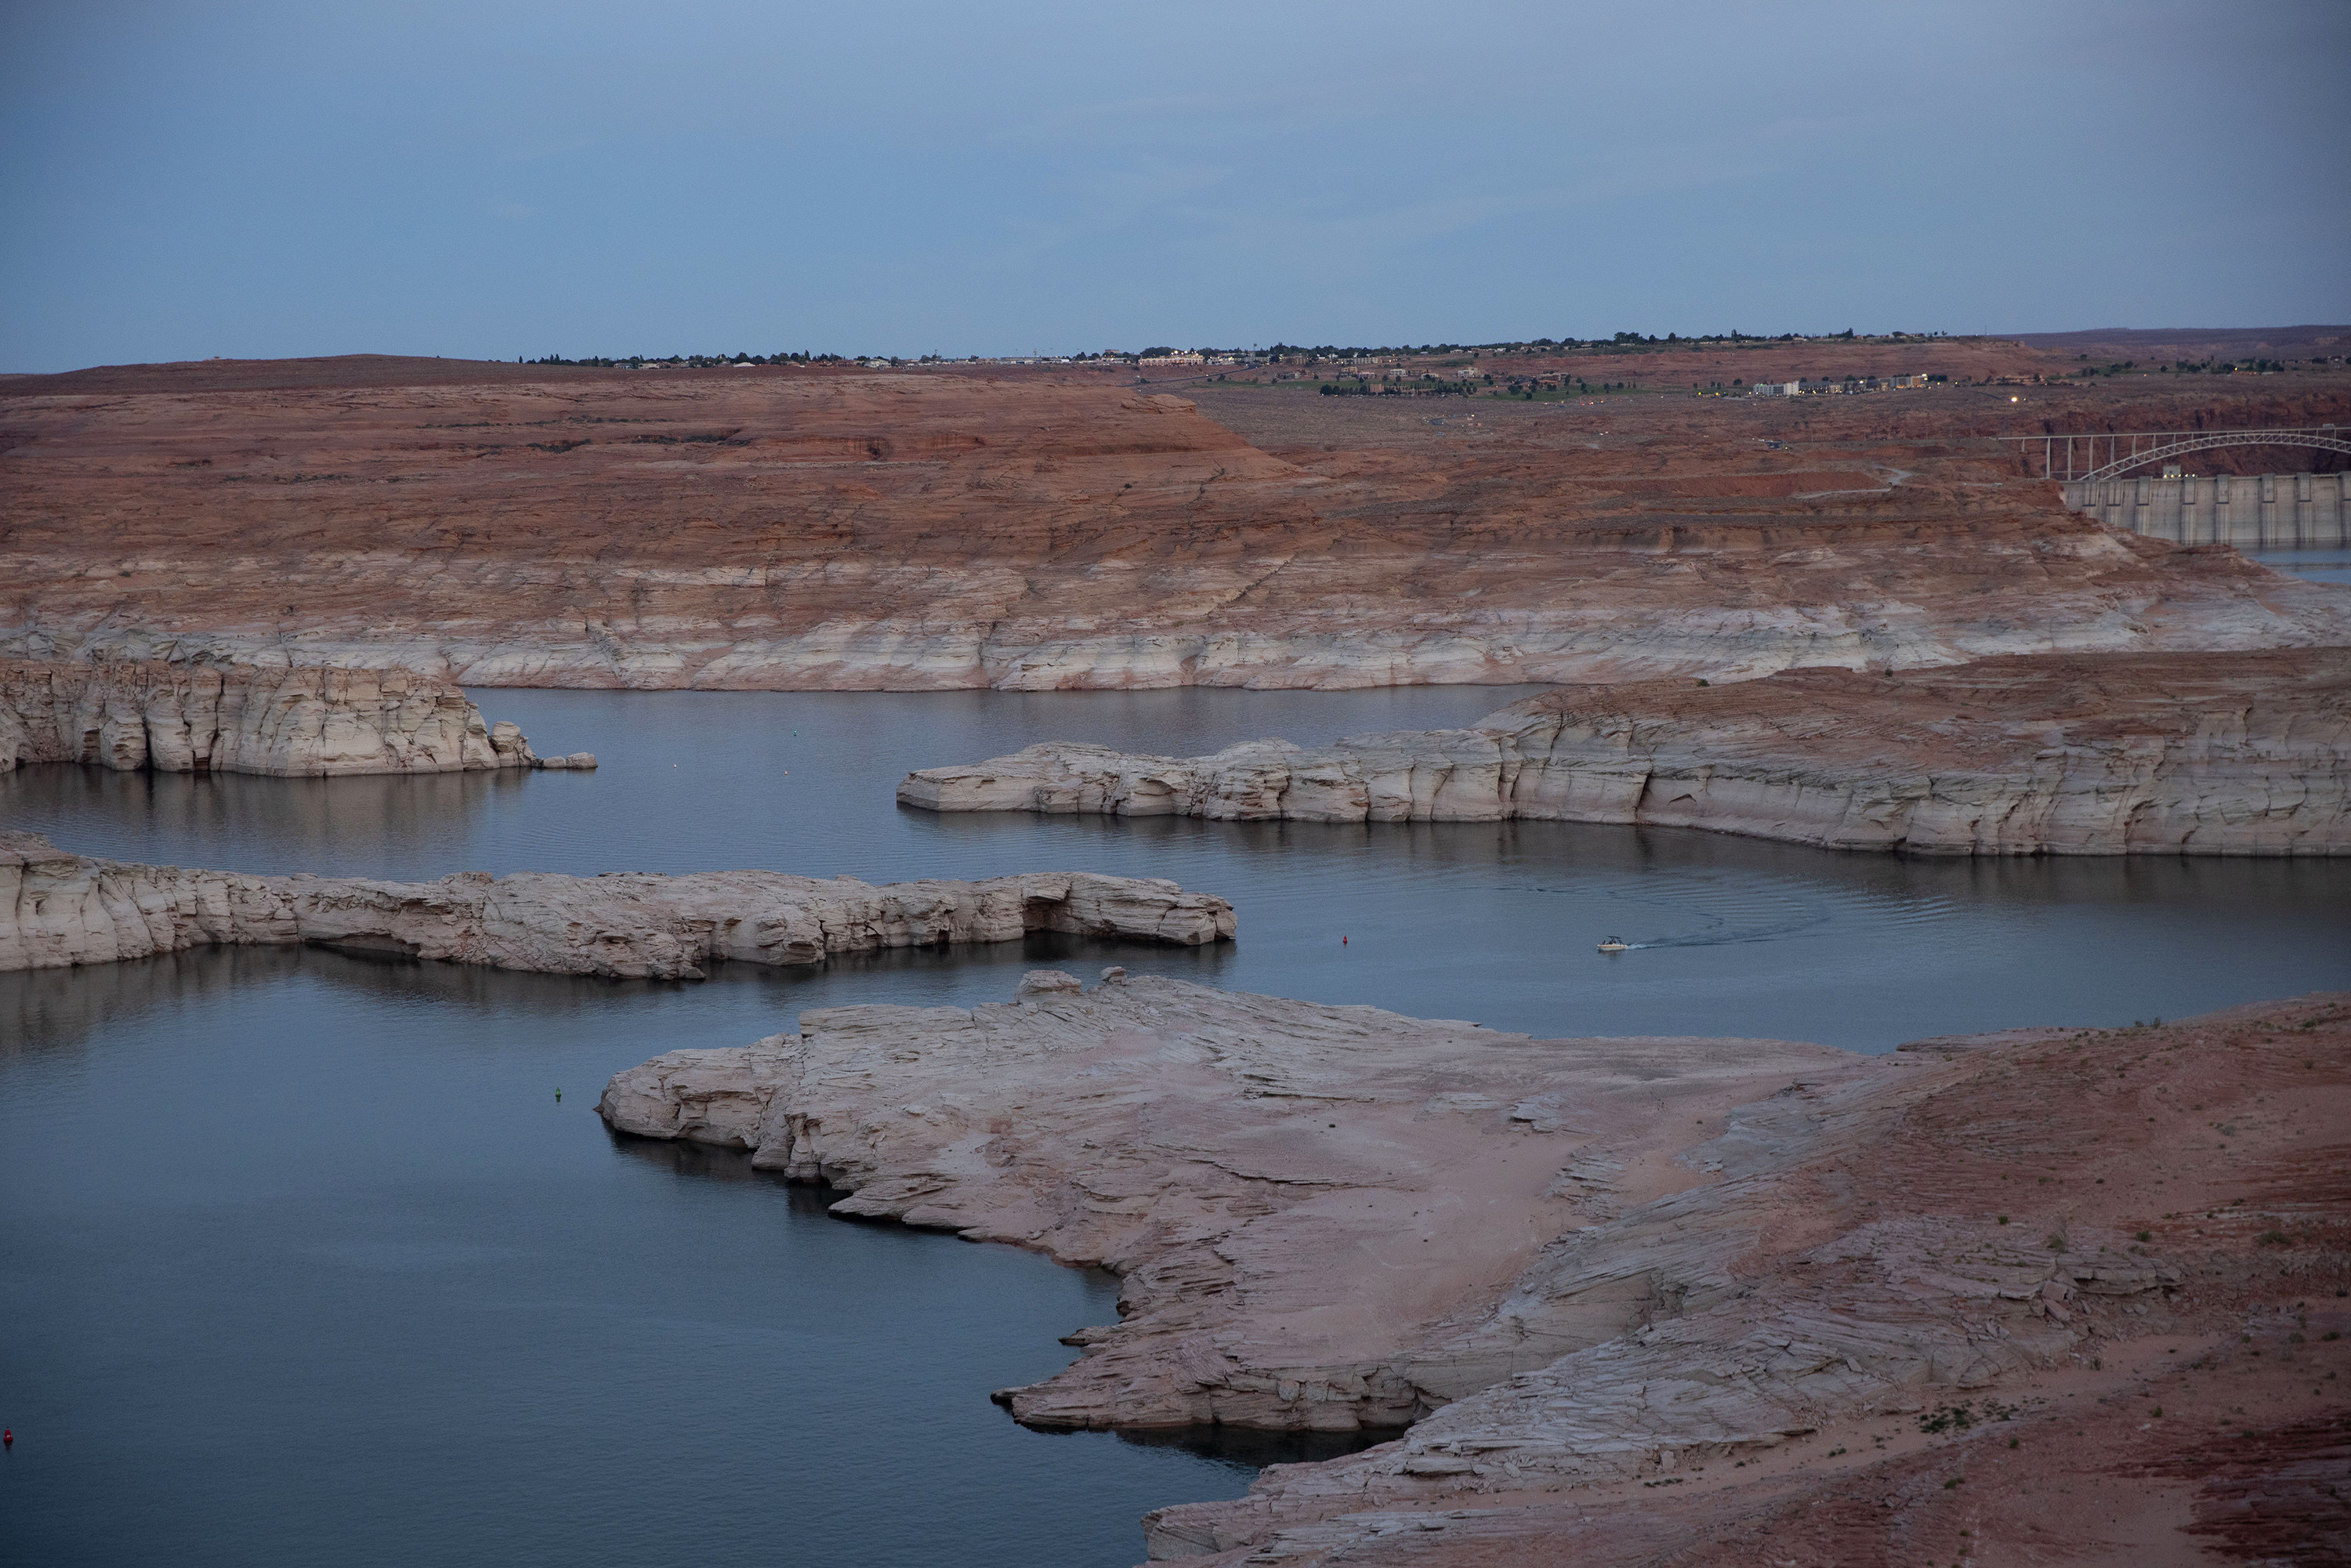 Low water levels are seen at dusk in Lake Powell with urban development in the background as a boat moves through the body of water